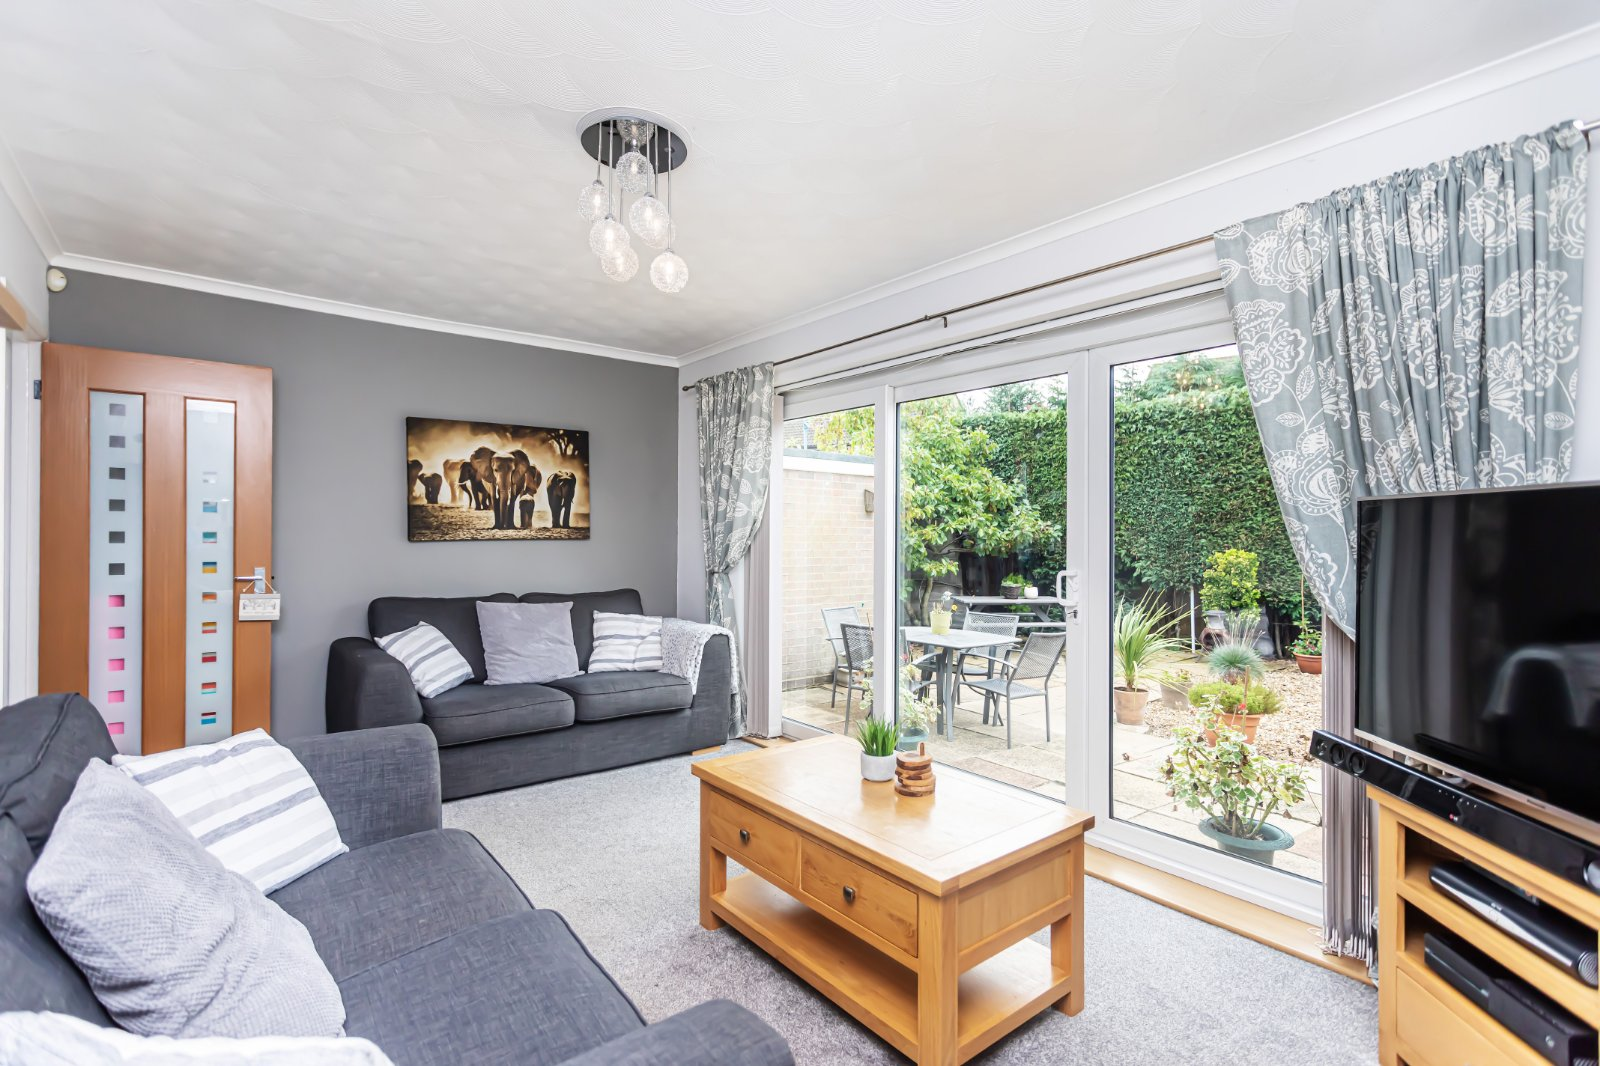 3 bed house for sale in Creekmoor - Property Image 1